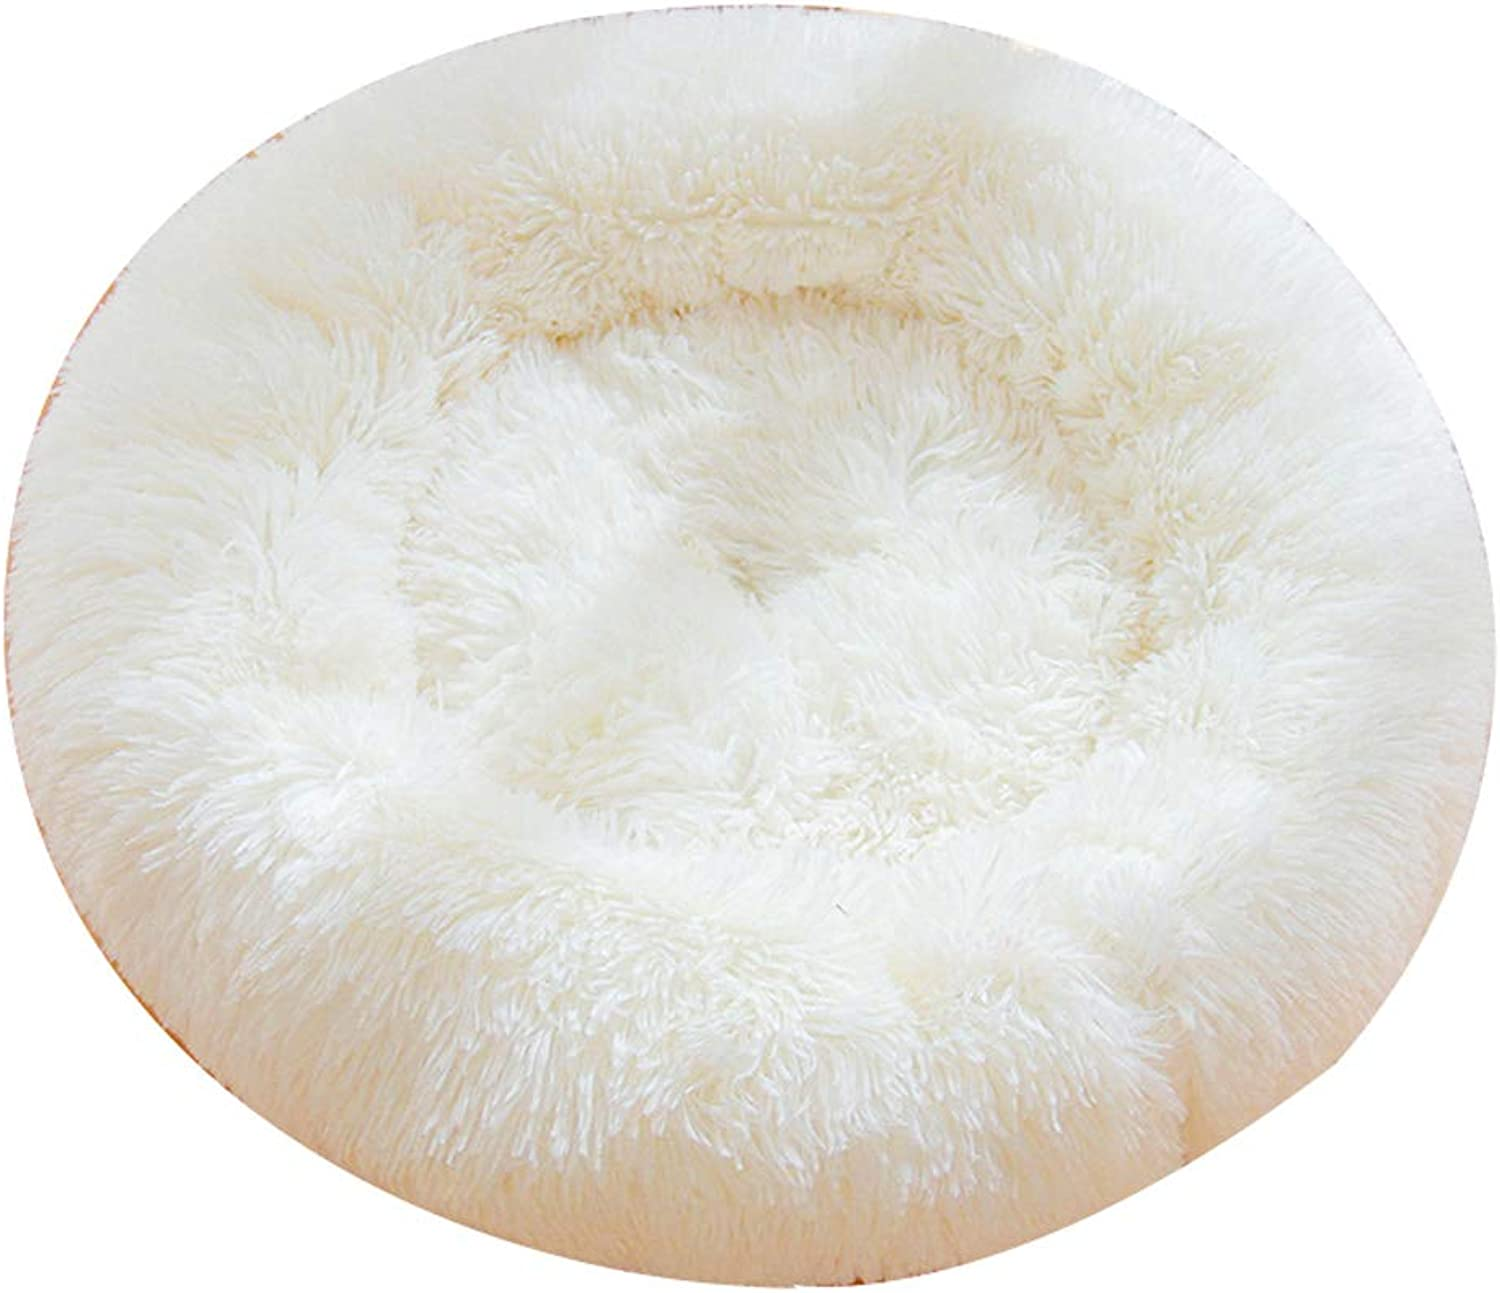 Kennel QIQIDEDIAN Pet Nest Winter Warm Small And Medium Dogs Four Seasons Universal Pet Bed House Cat Supplies Full Set (color   White)